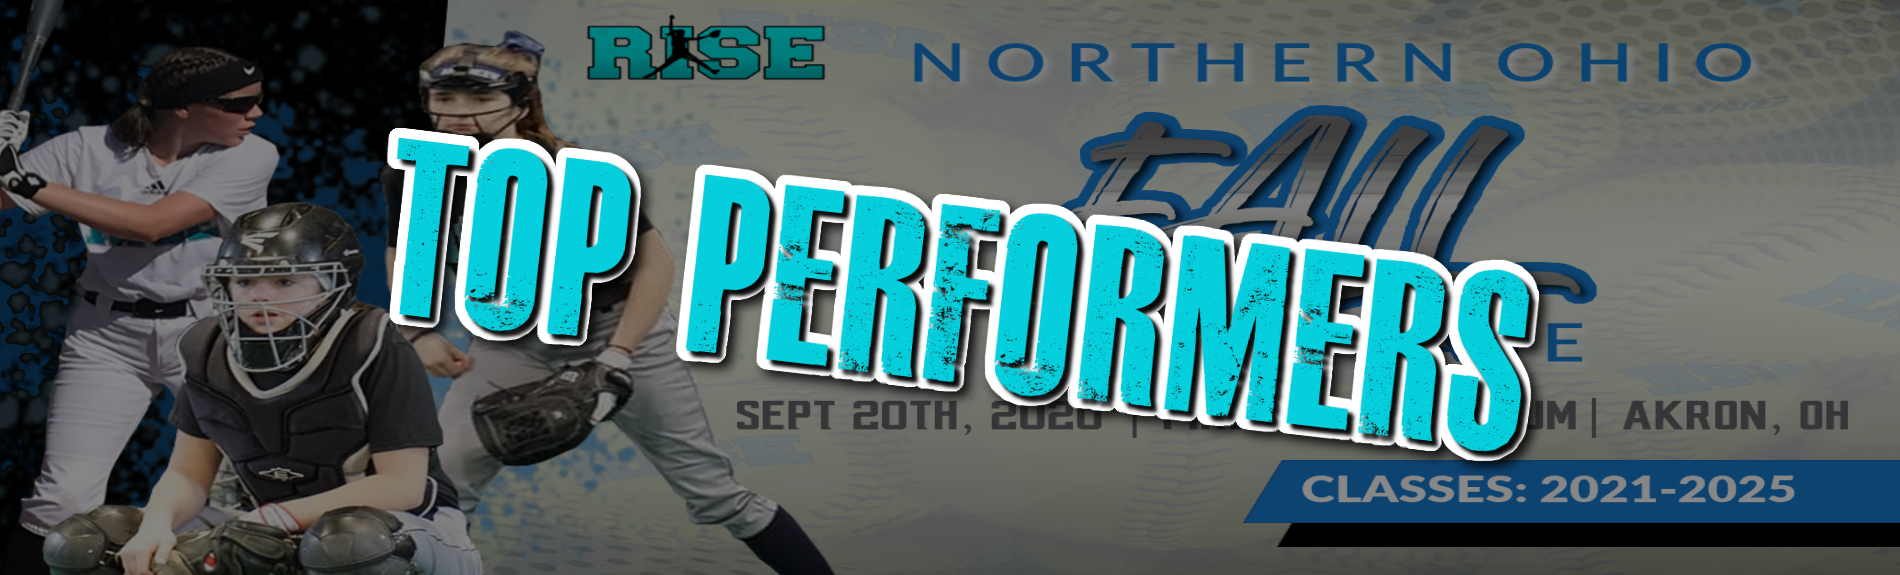 "Northern Ohio Fall Showcase ""TOP PERFORMERS"""